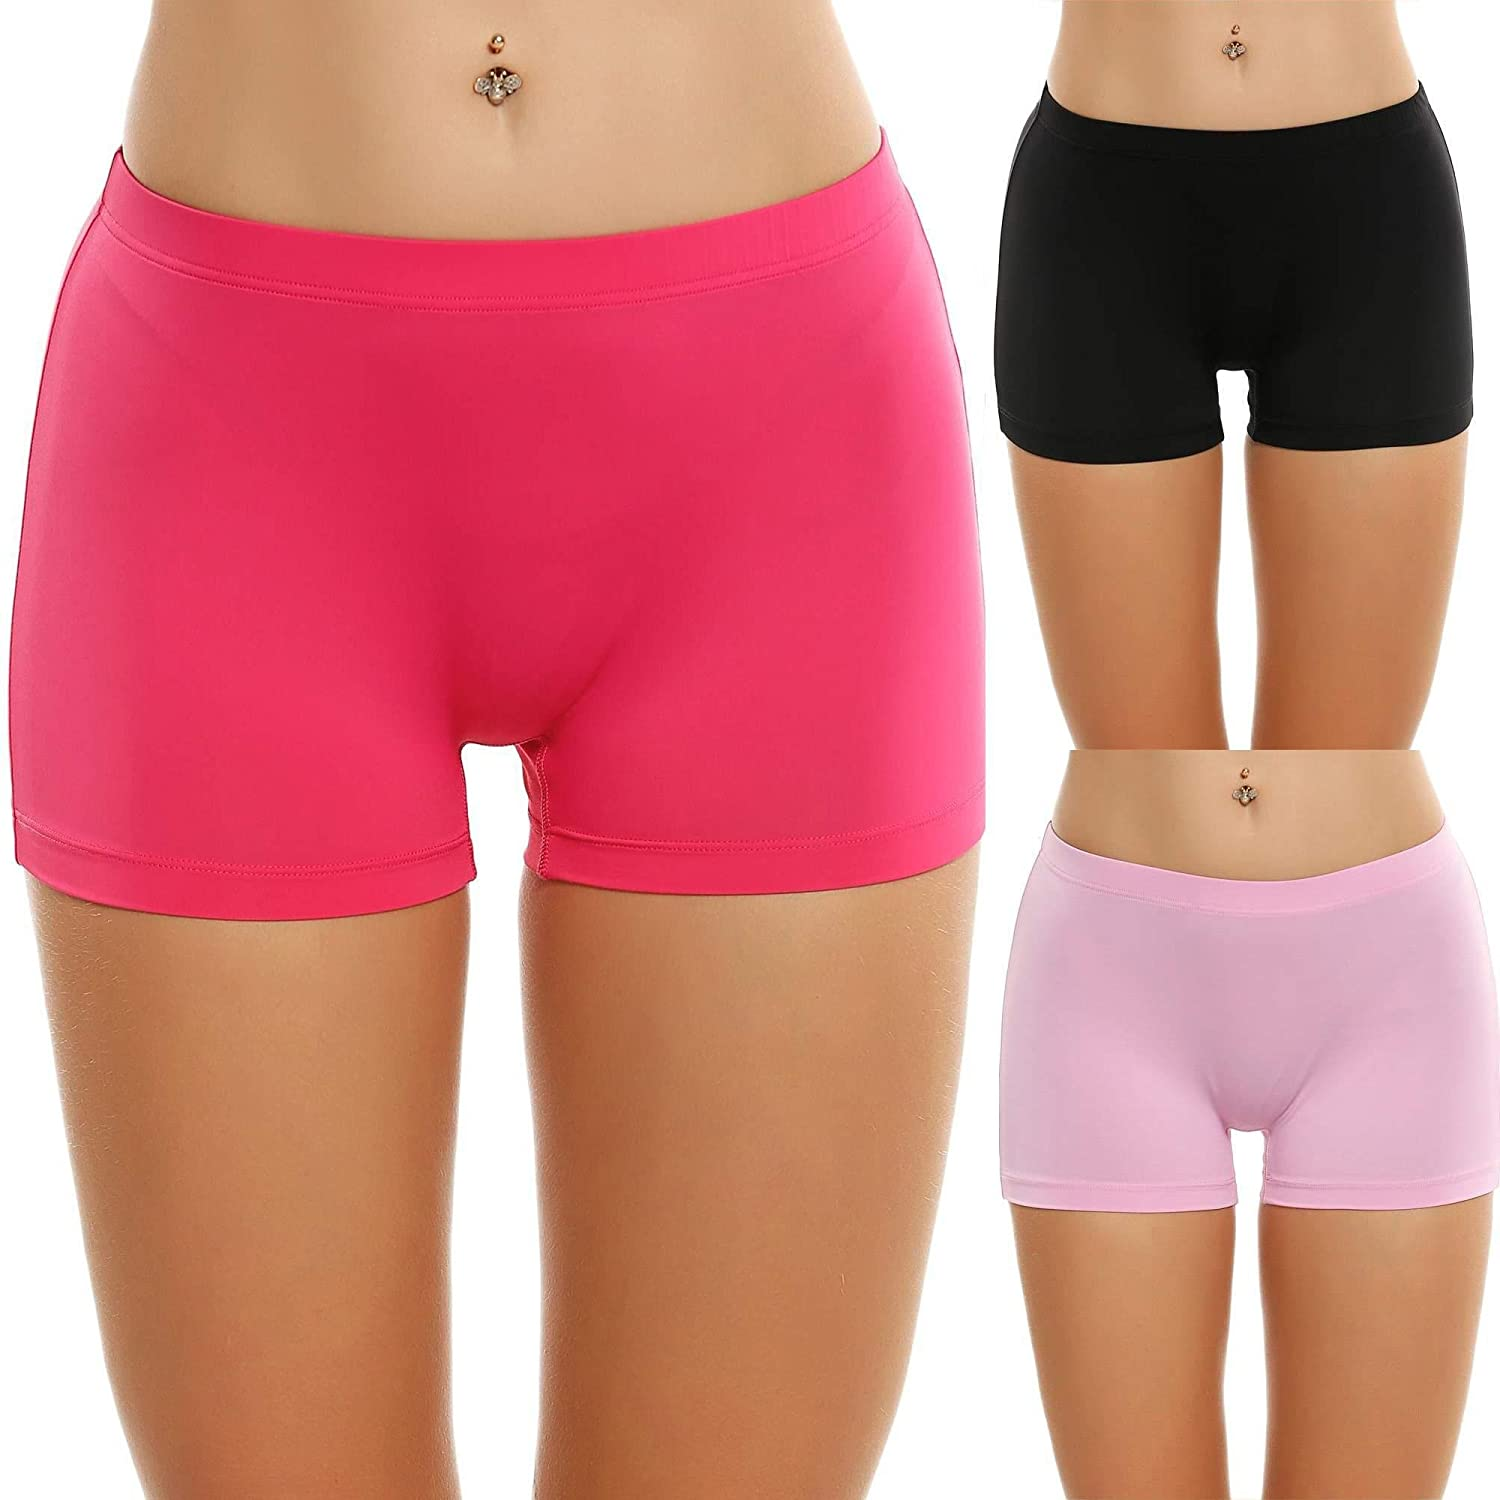 42bc46939b88 Cozy waistband and seamfree design boyshort panties are featured  stay-in-place legs. Confort invisible hipster briefs are perfect for panty,  ...